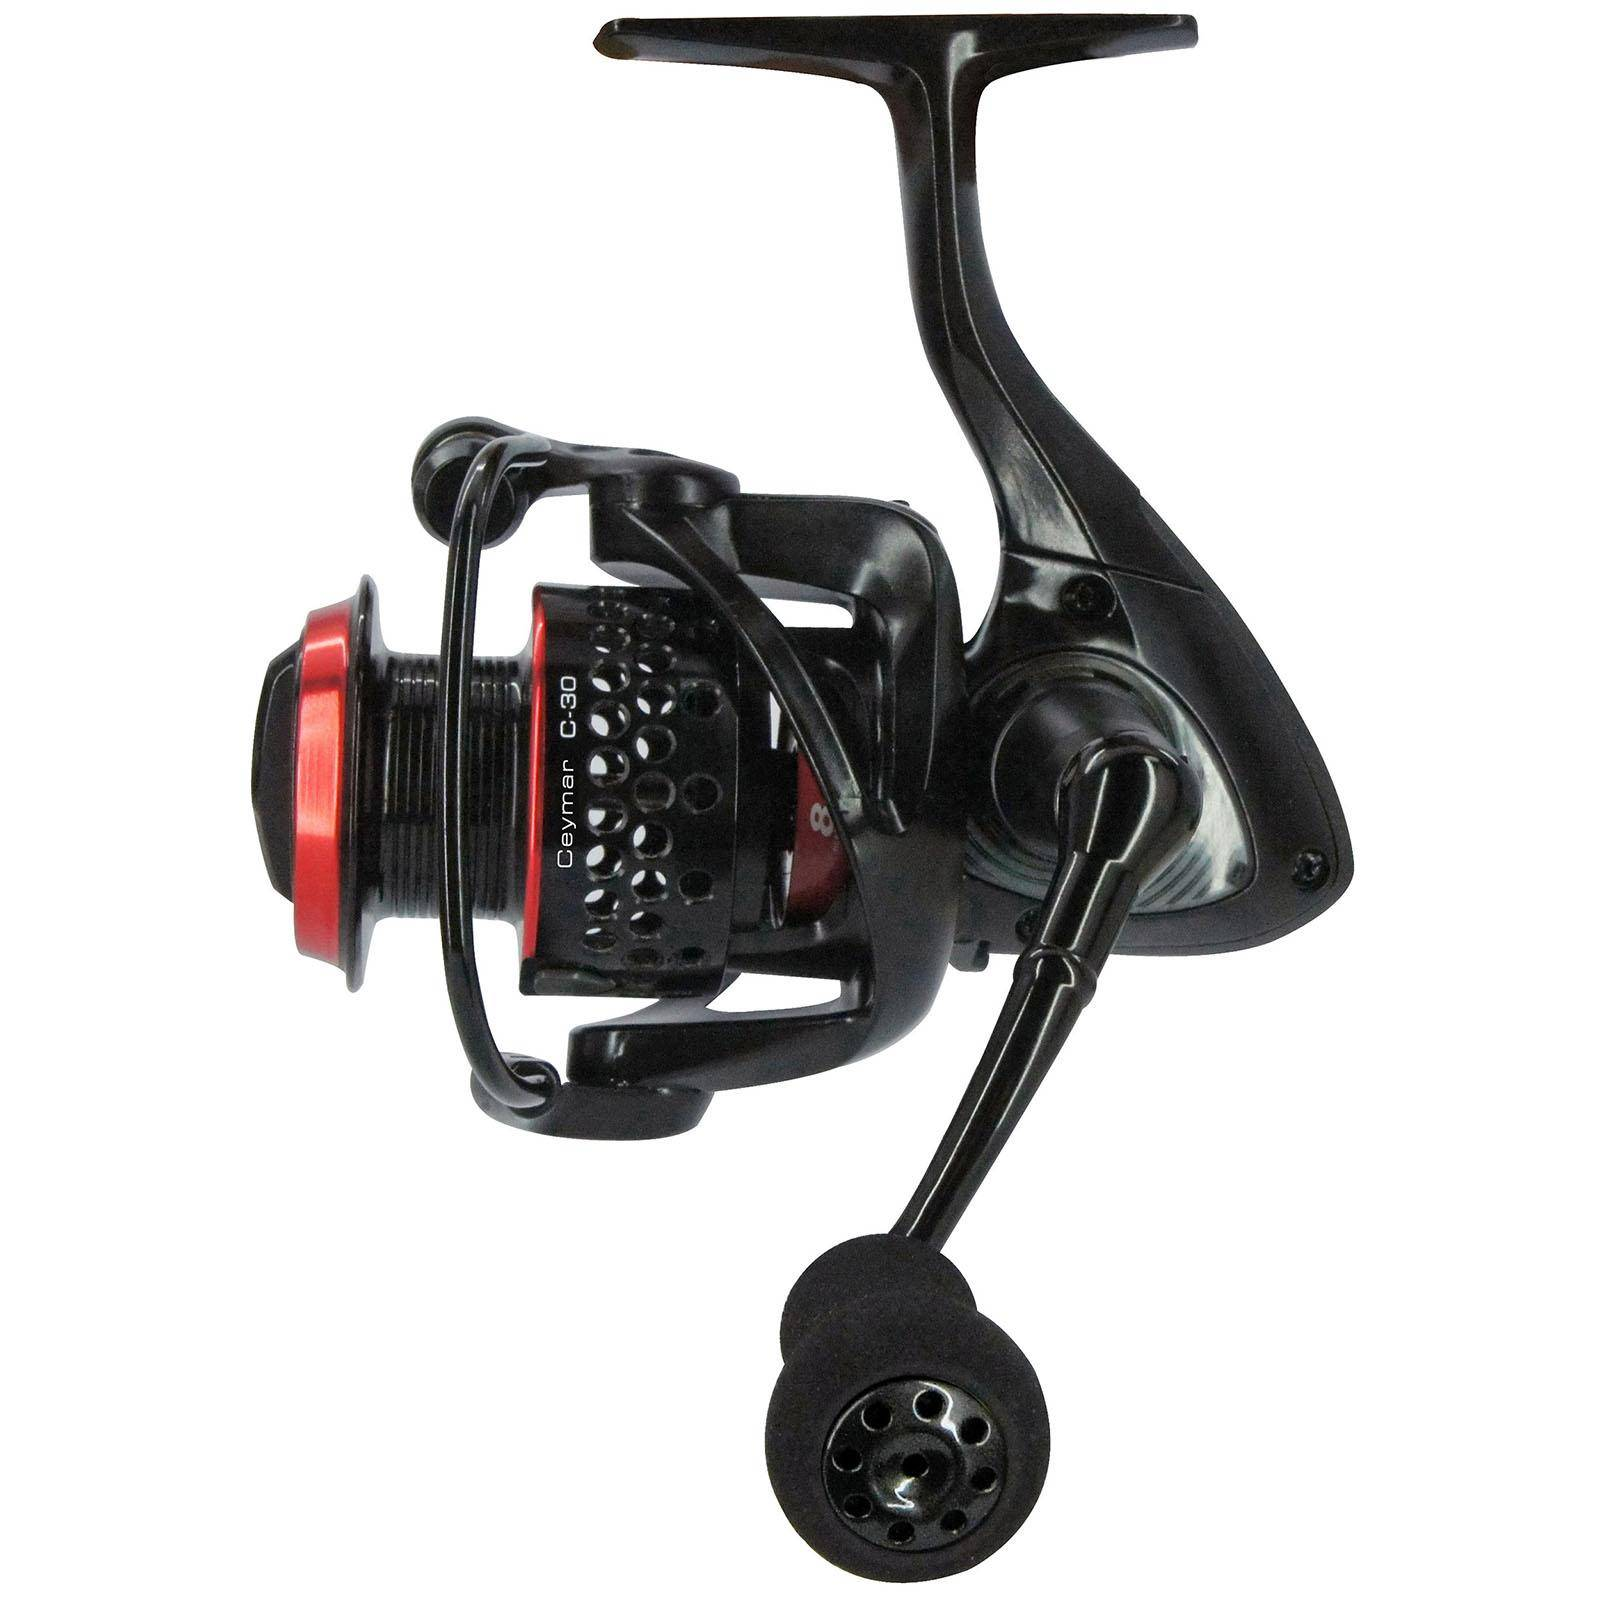 Okuma Ceymar Spinning Reel Model C-20